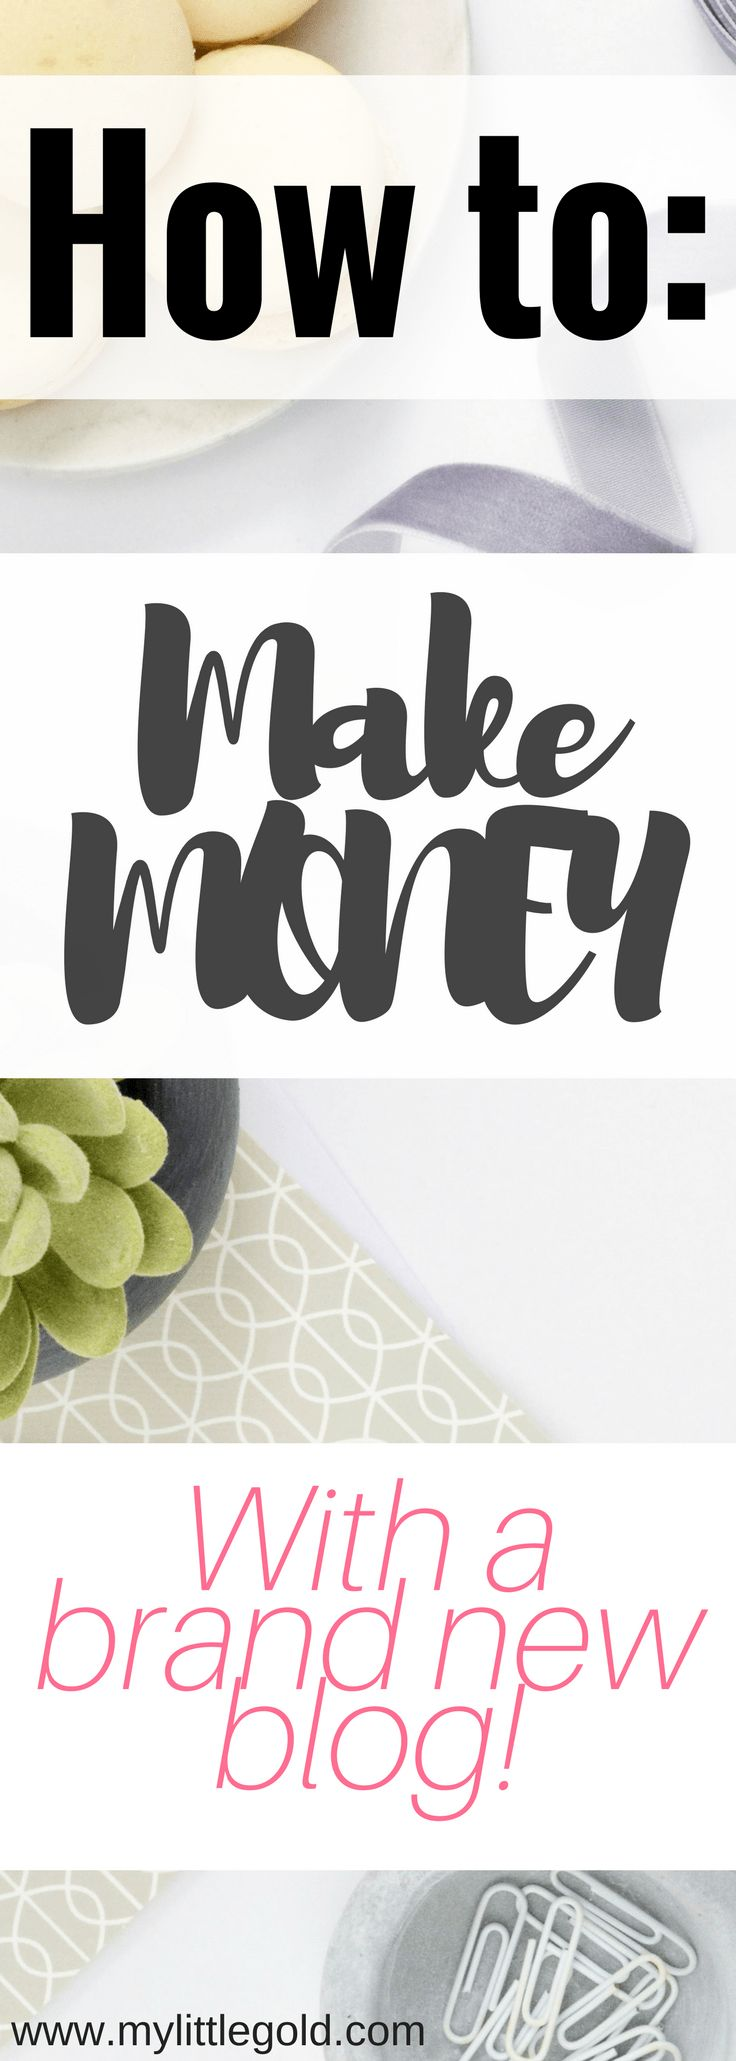 curious how bloggers make money blogging? ever read their income reports? there's some tips to get you on the right track!